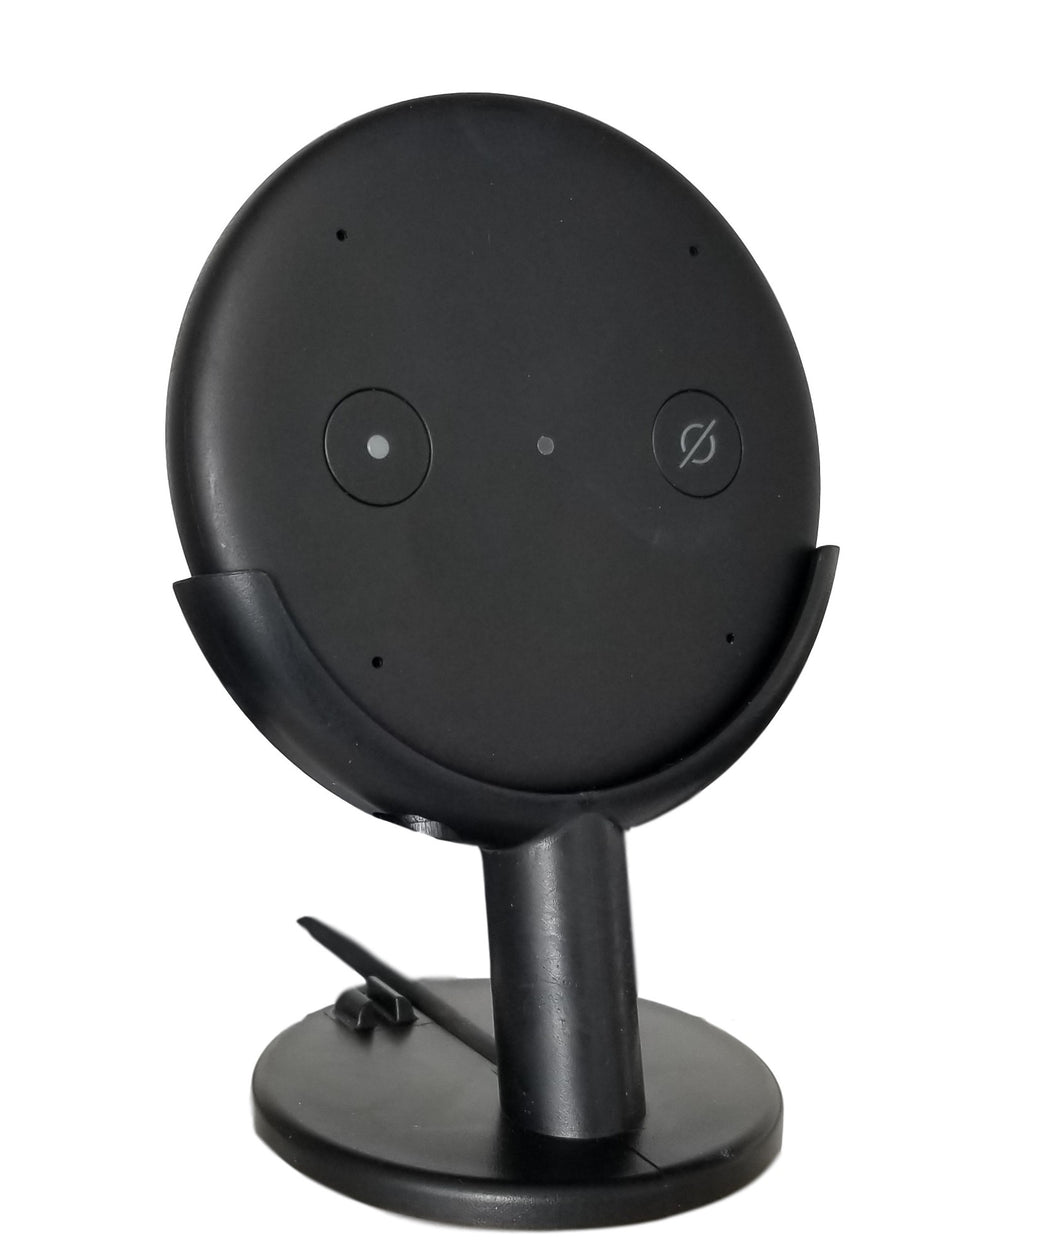 Dot Genie Echo Input Mount Stand Pedestal for Home Theater. Improves Microphone Response. Improves Visibility. Improves Appearance.